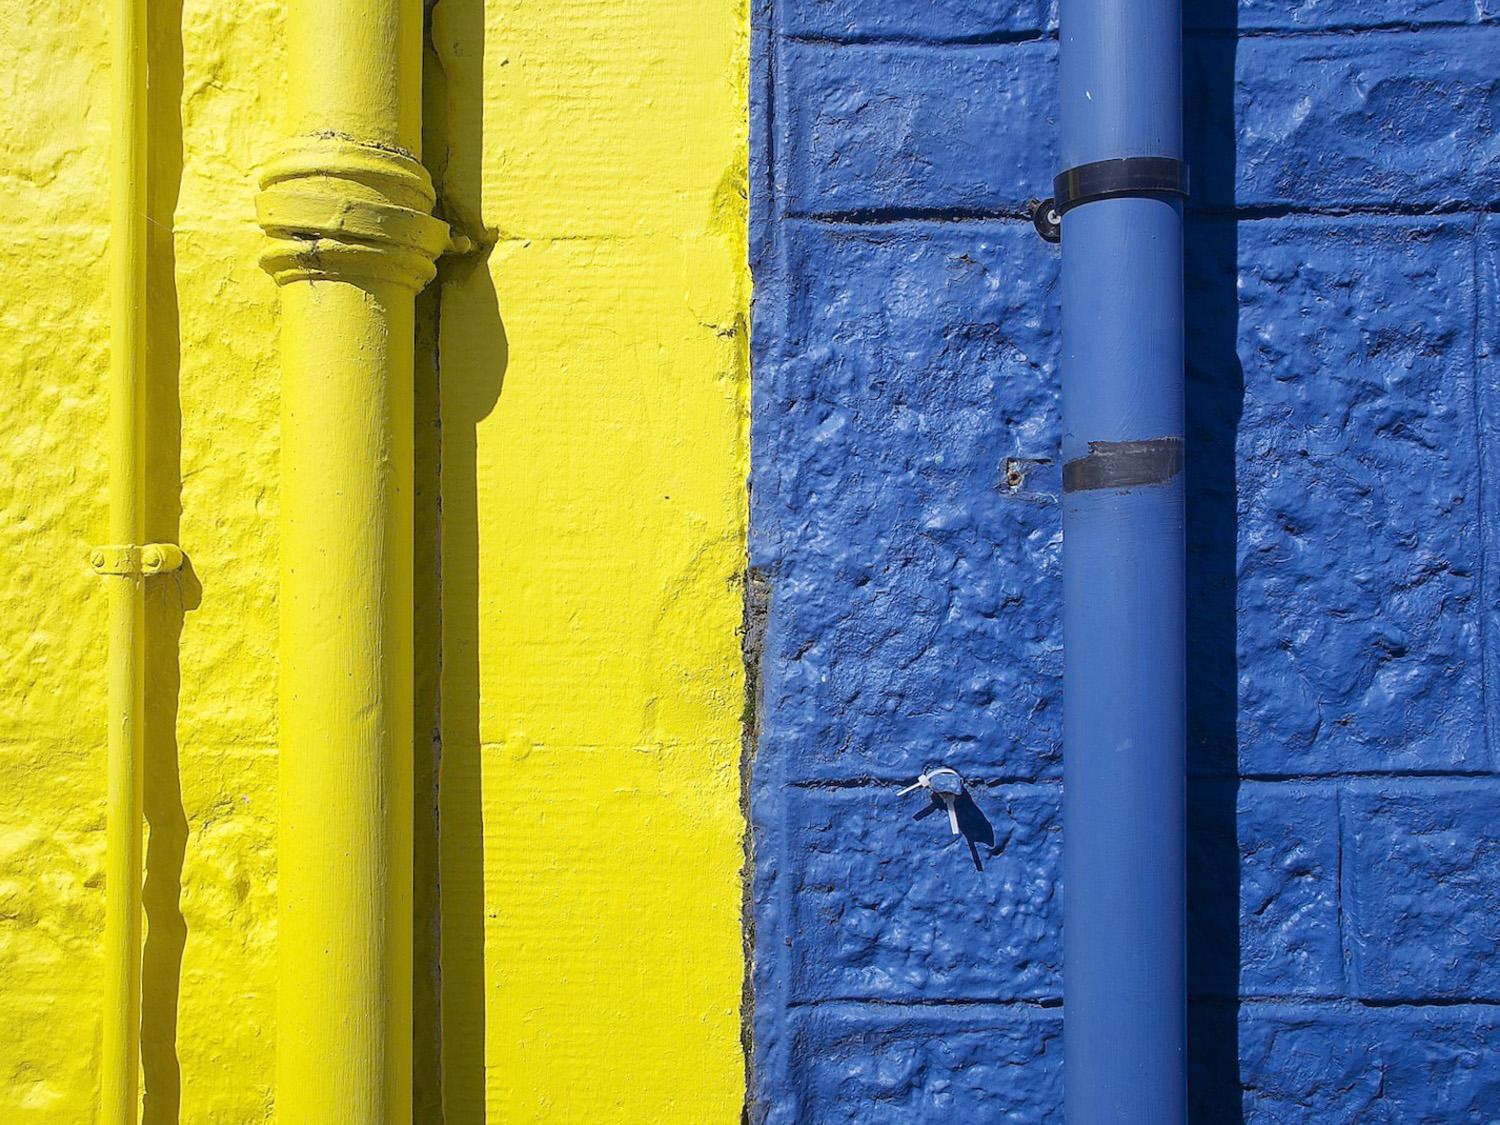 Christopher-Swan-Mull-Tobermory-Colours-abstract 112014-04-18 copy.jpg